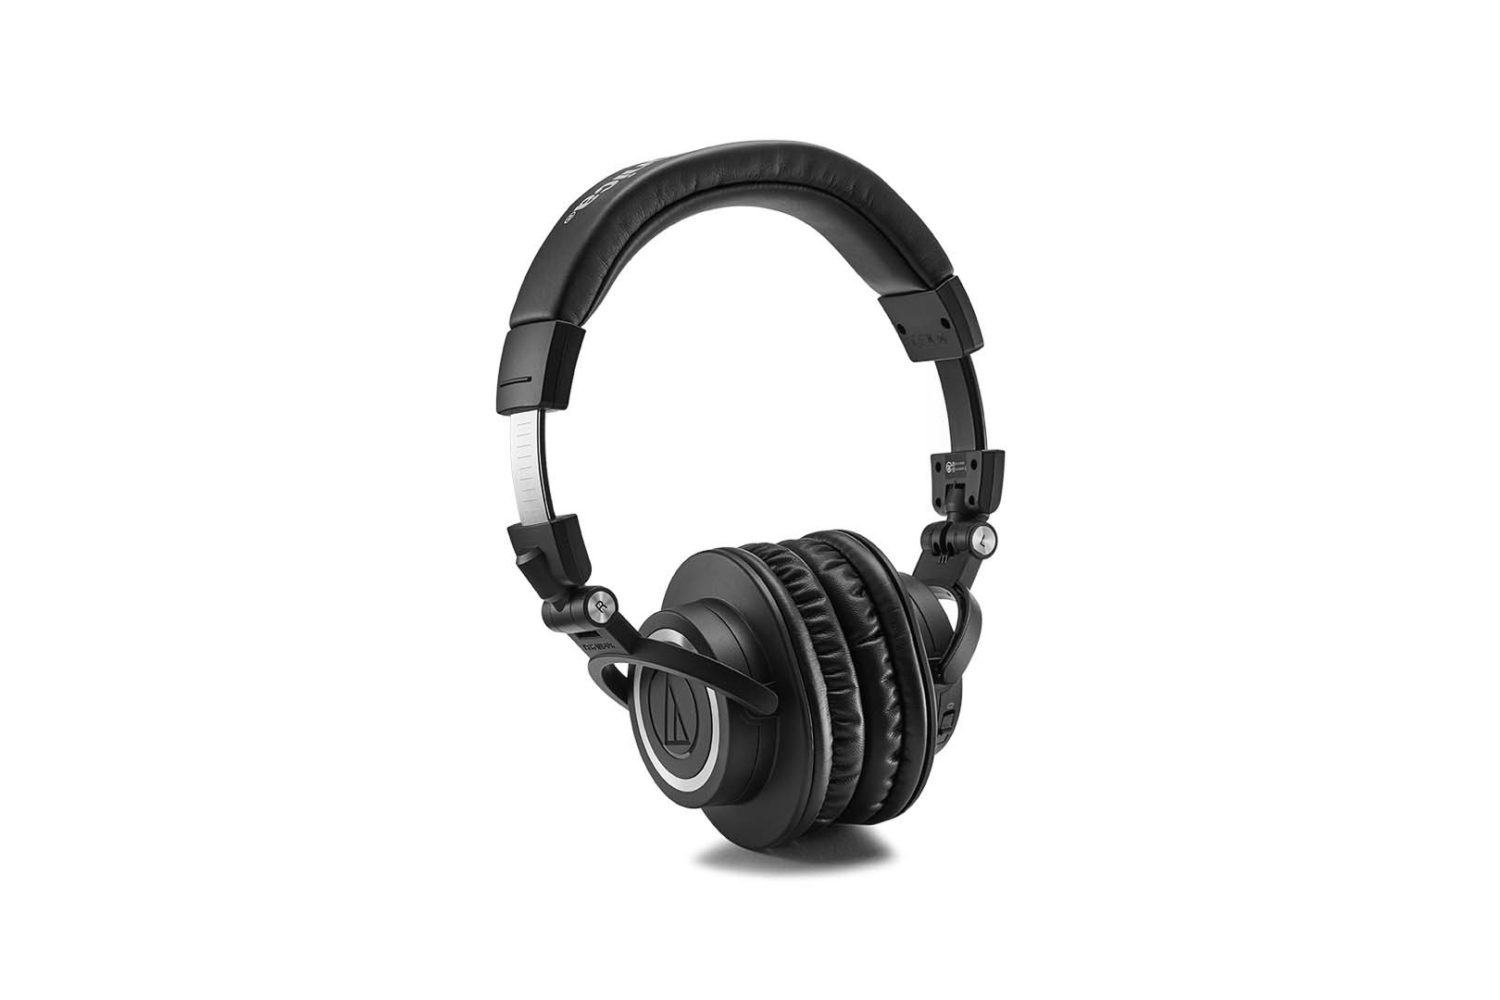 Win a pair of Audio-Technica wireless bluetooth headphones